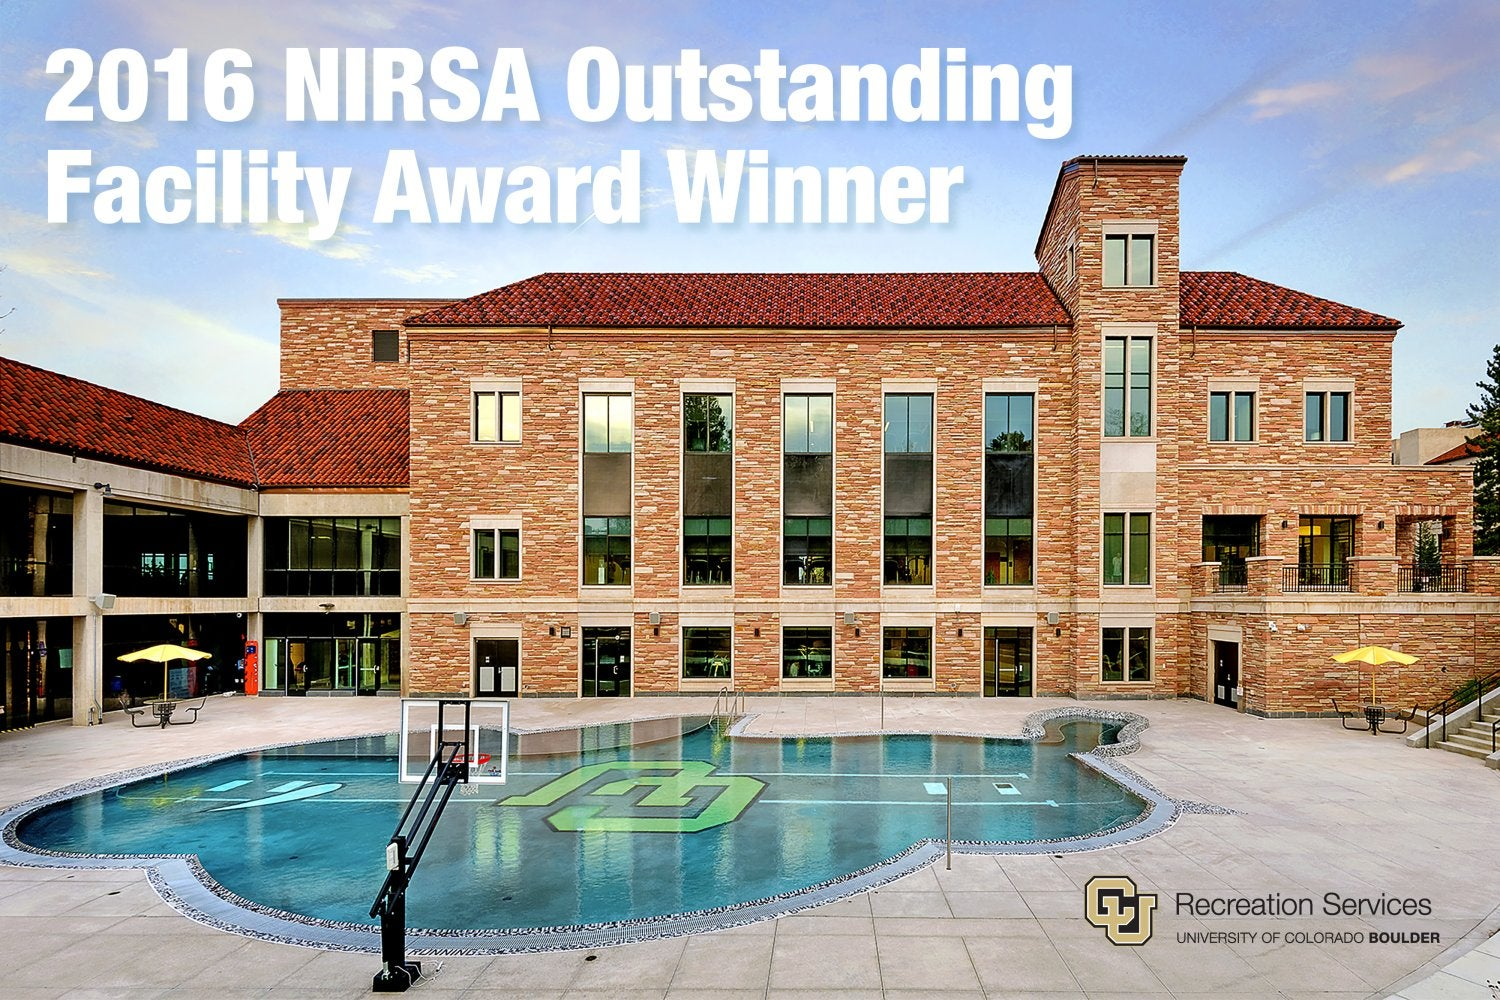 NIRSA Award Winner